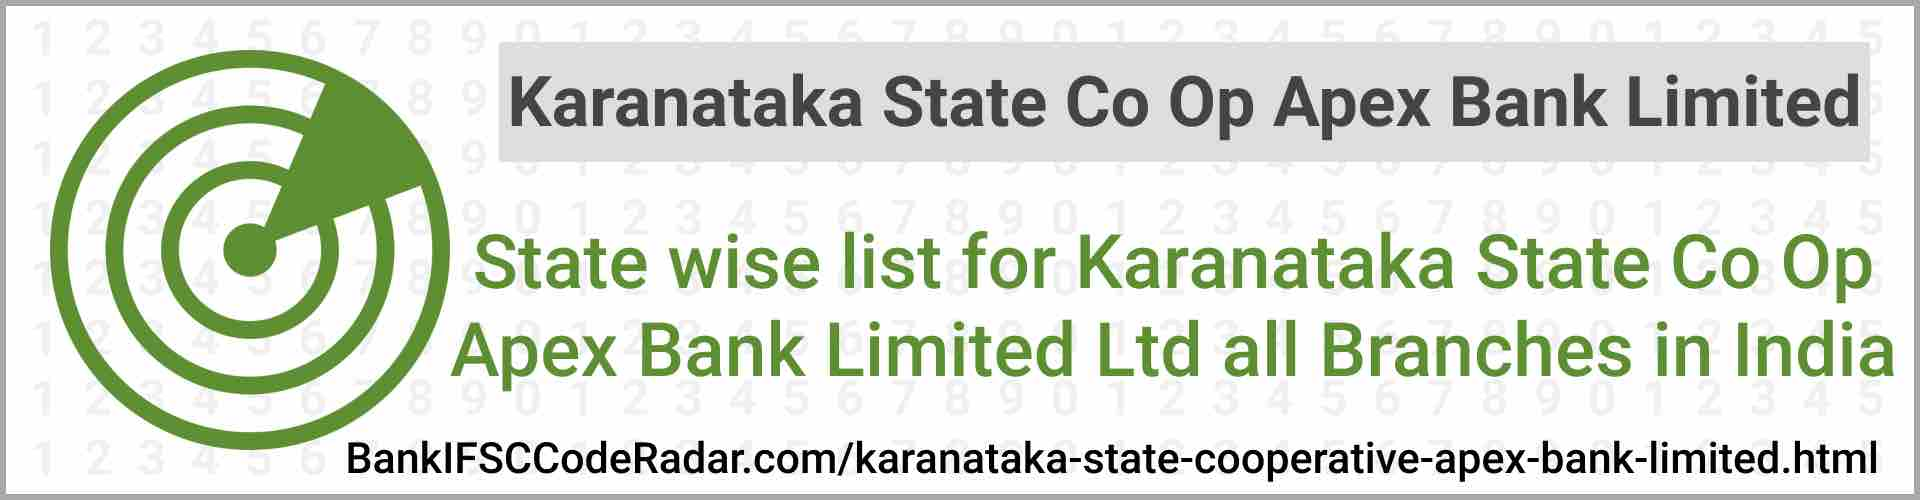 Karanataka State Cooperative Apex Bank Limited All Branches India